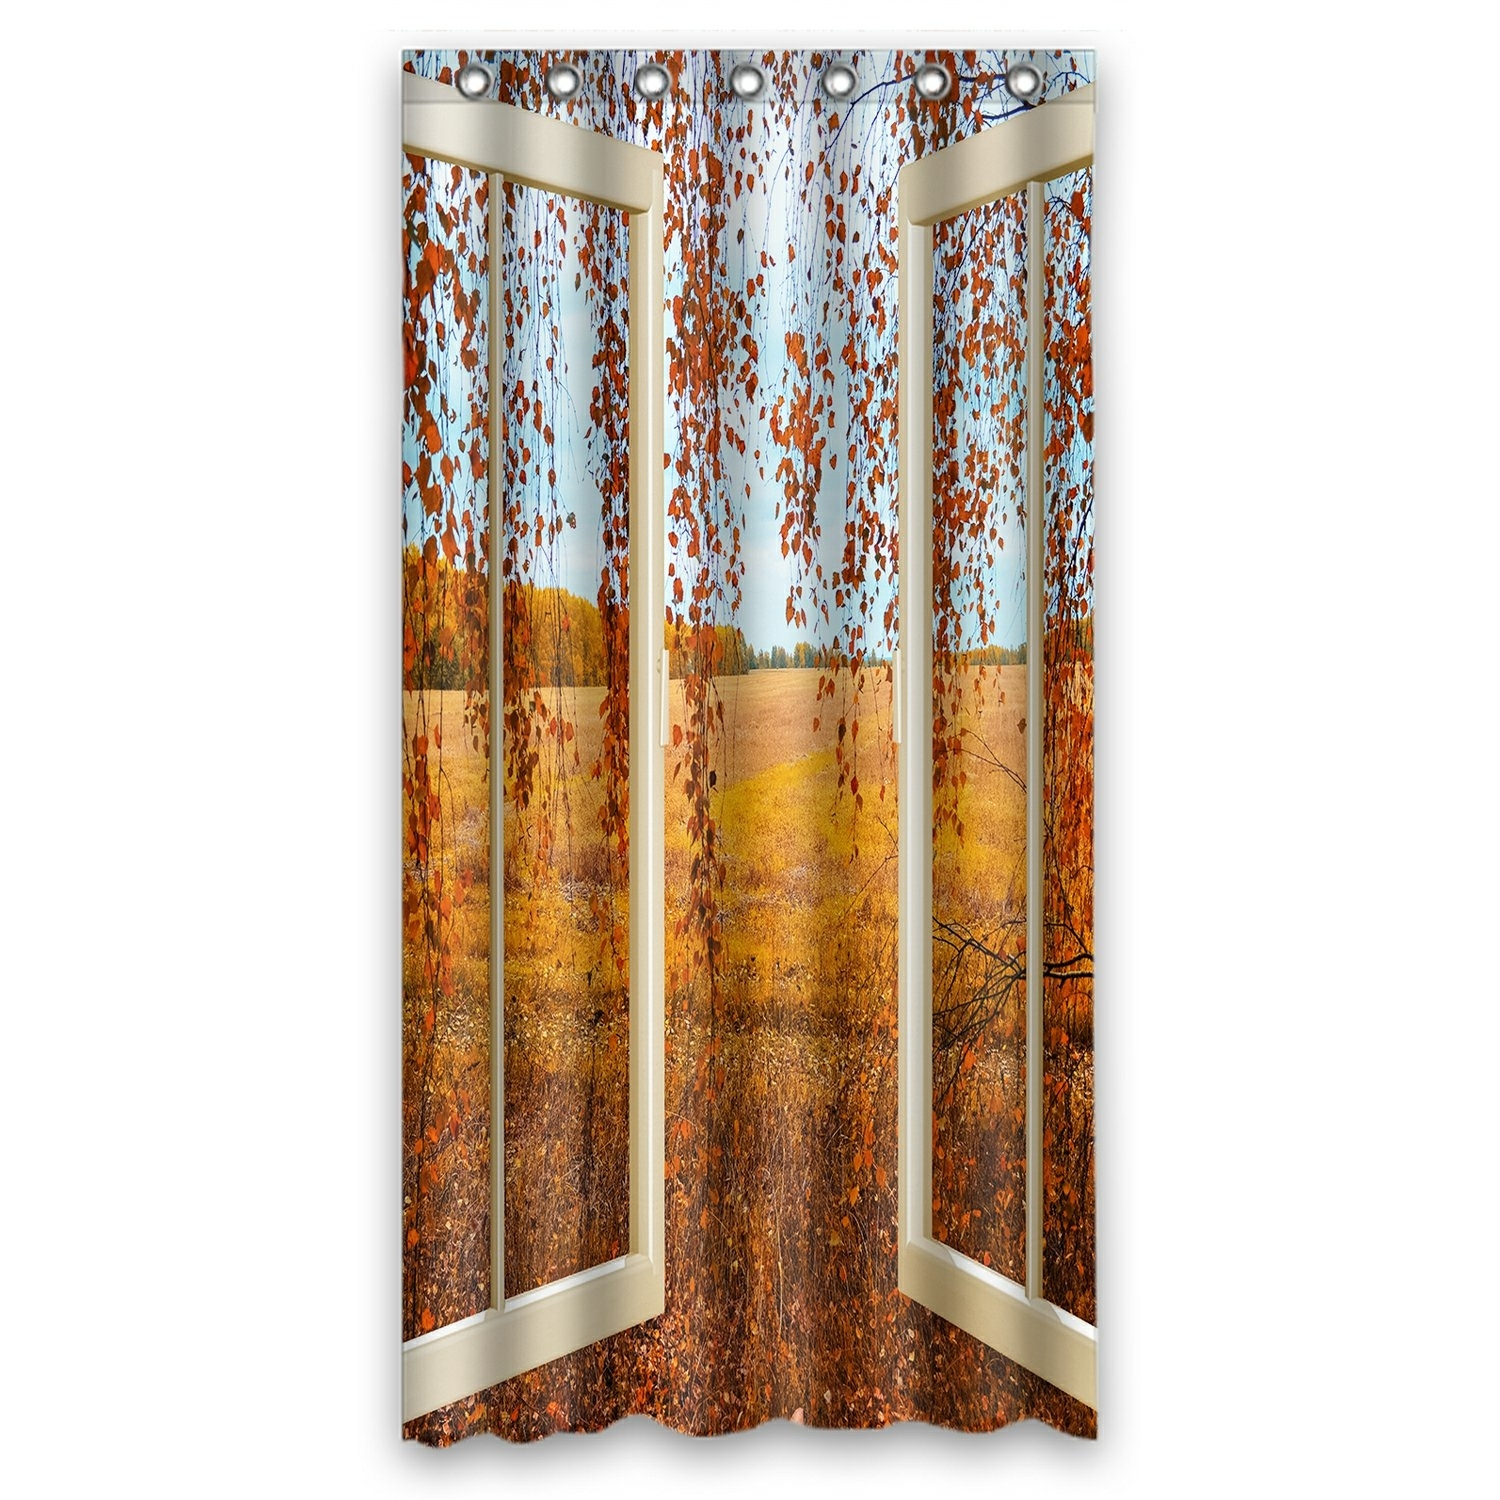 Scenery Shower Curtain, Open Window overlook the Autumn Forest Shower Curtain 36x72 inch